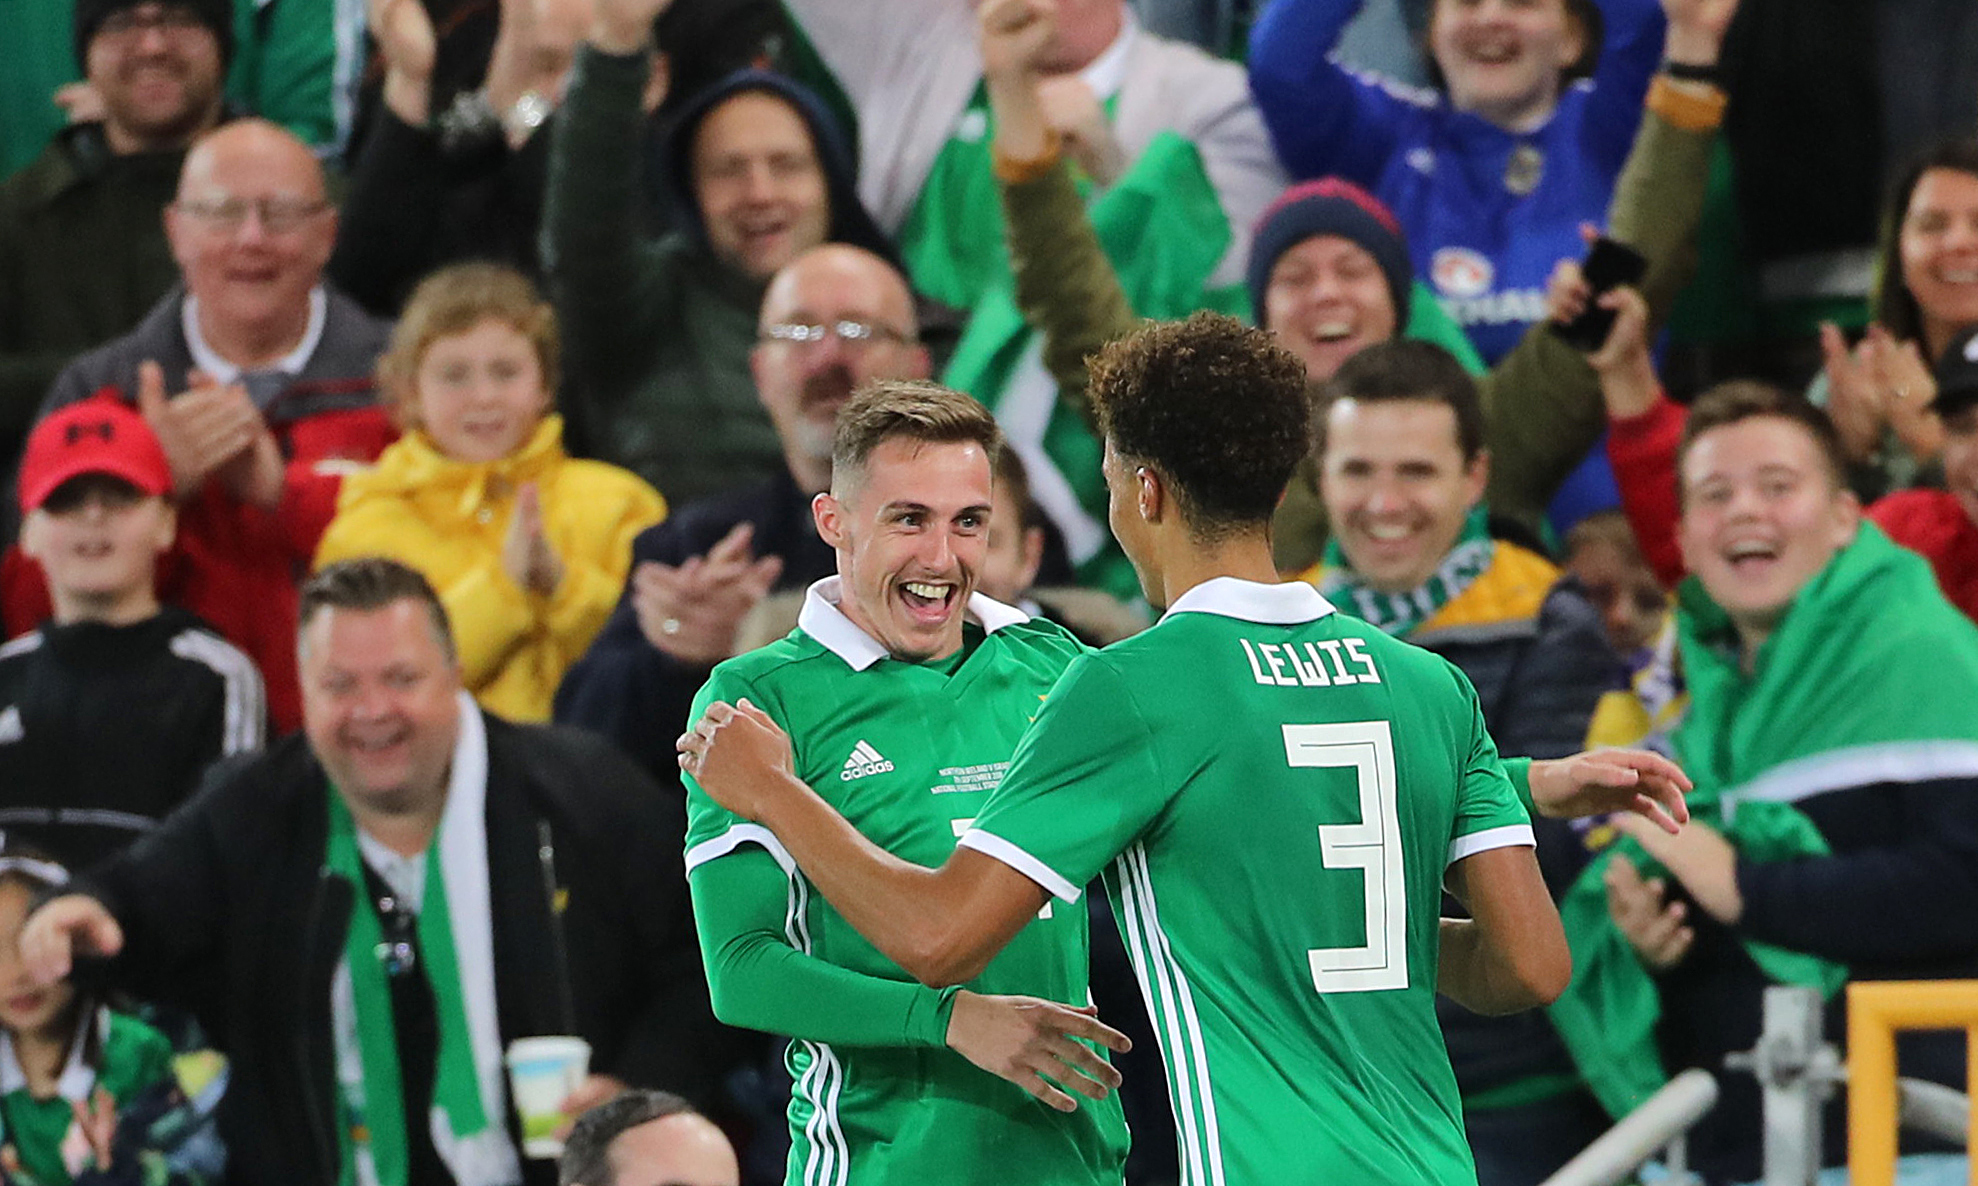 Gavin Whyte (left) celebrates scoring for Northern Ireland against Israel in a friendly at Windsor Park in September Picture: Liam McBurney/PA Wire